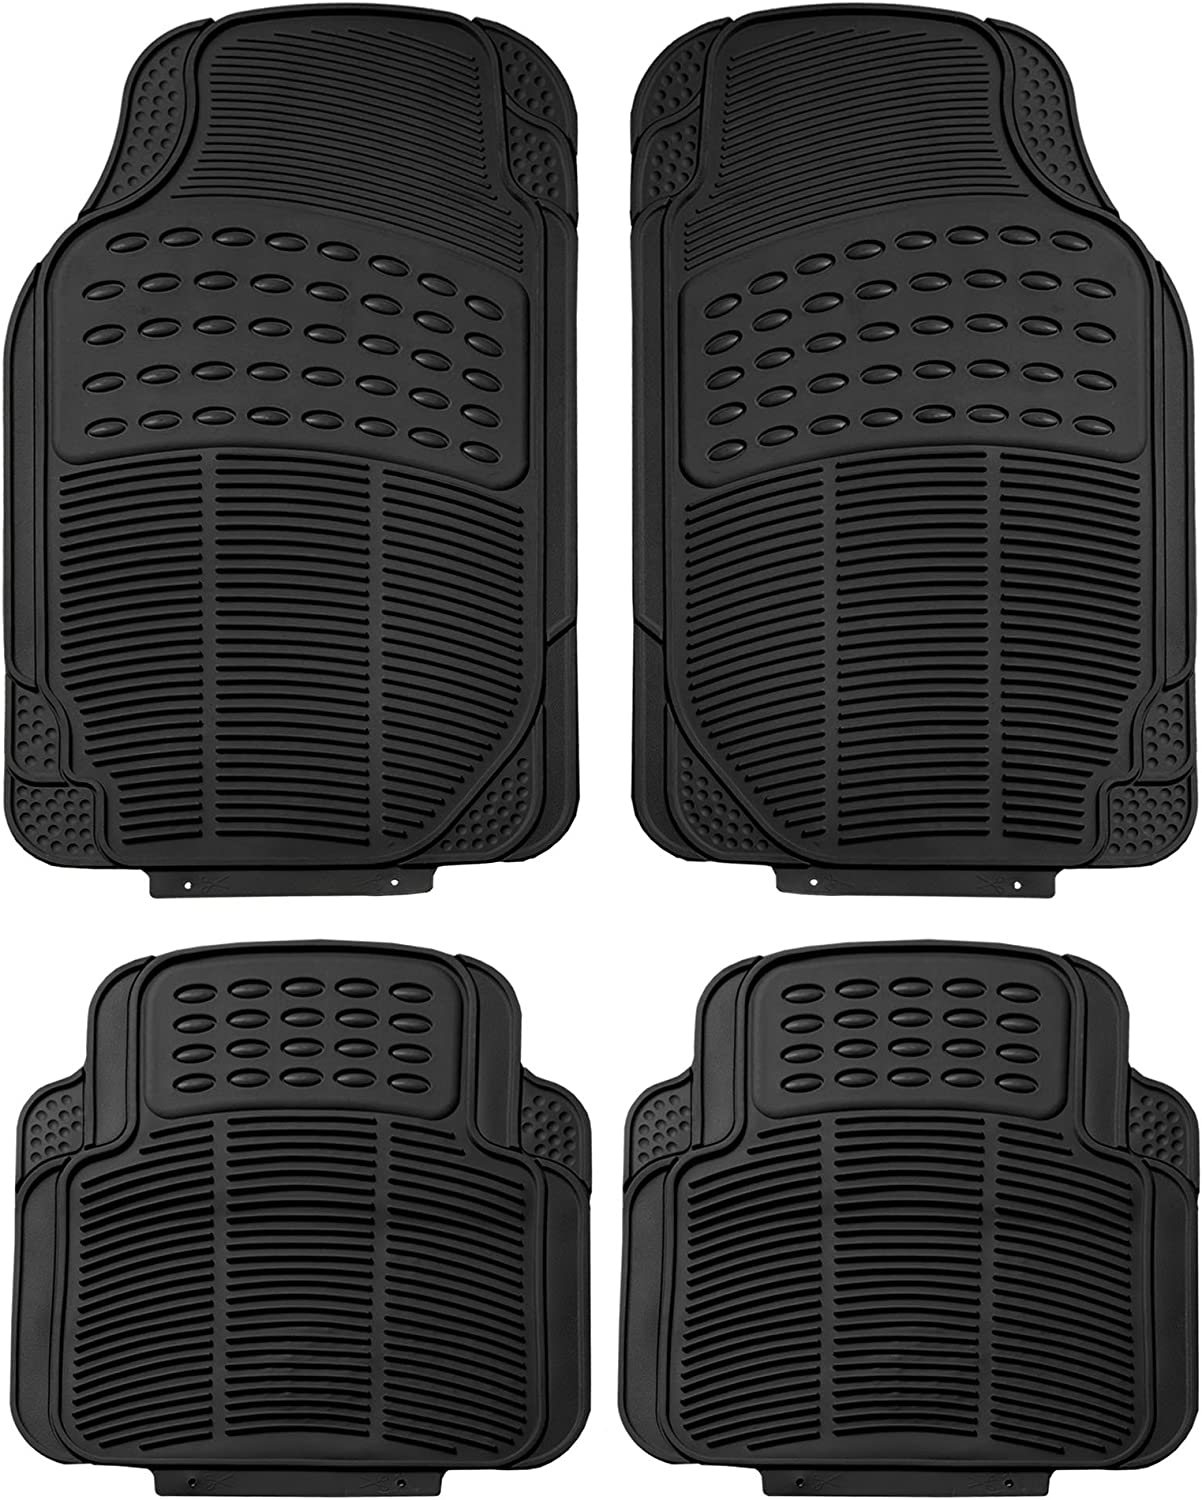 FH Group F11305 Trimmable Rubber Floor Mats (Black) Full Set - Universal Fit for Cars Trucks and SUVs